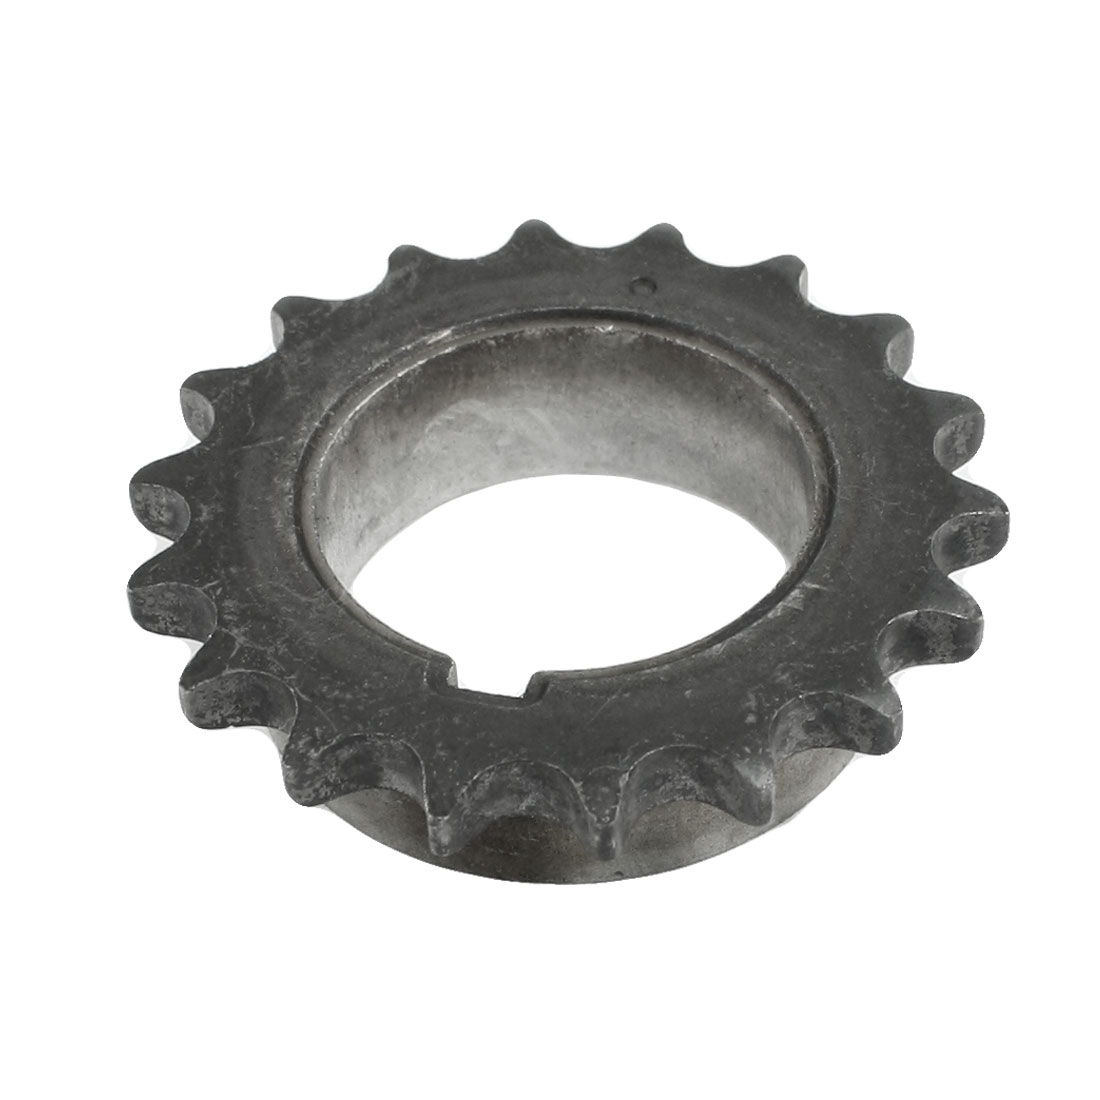 Car Crankshaft Sprocket Pulley Replacement 13521-28010